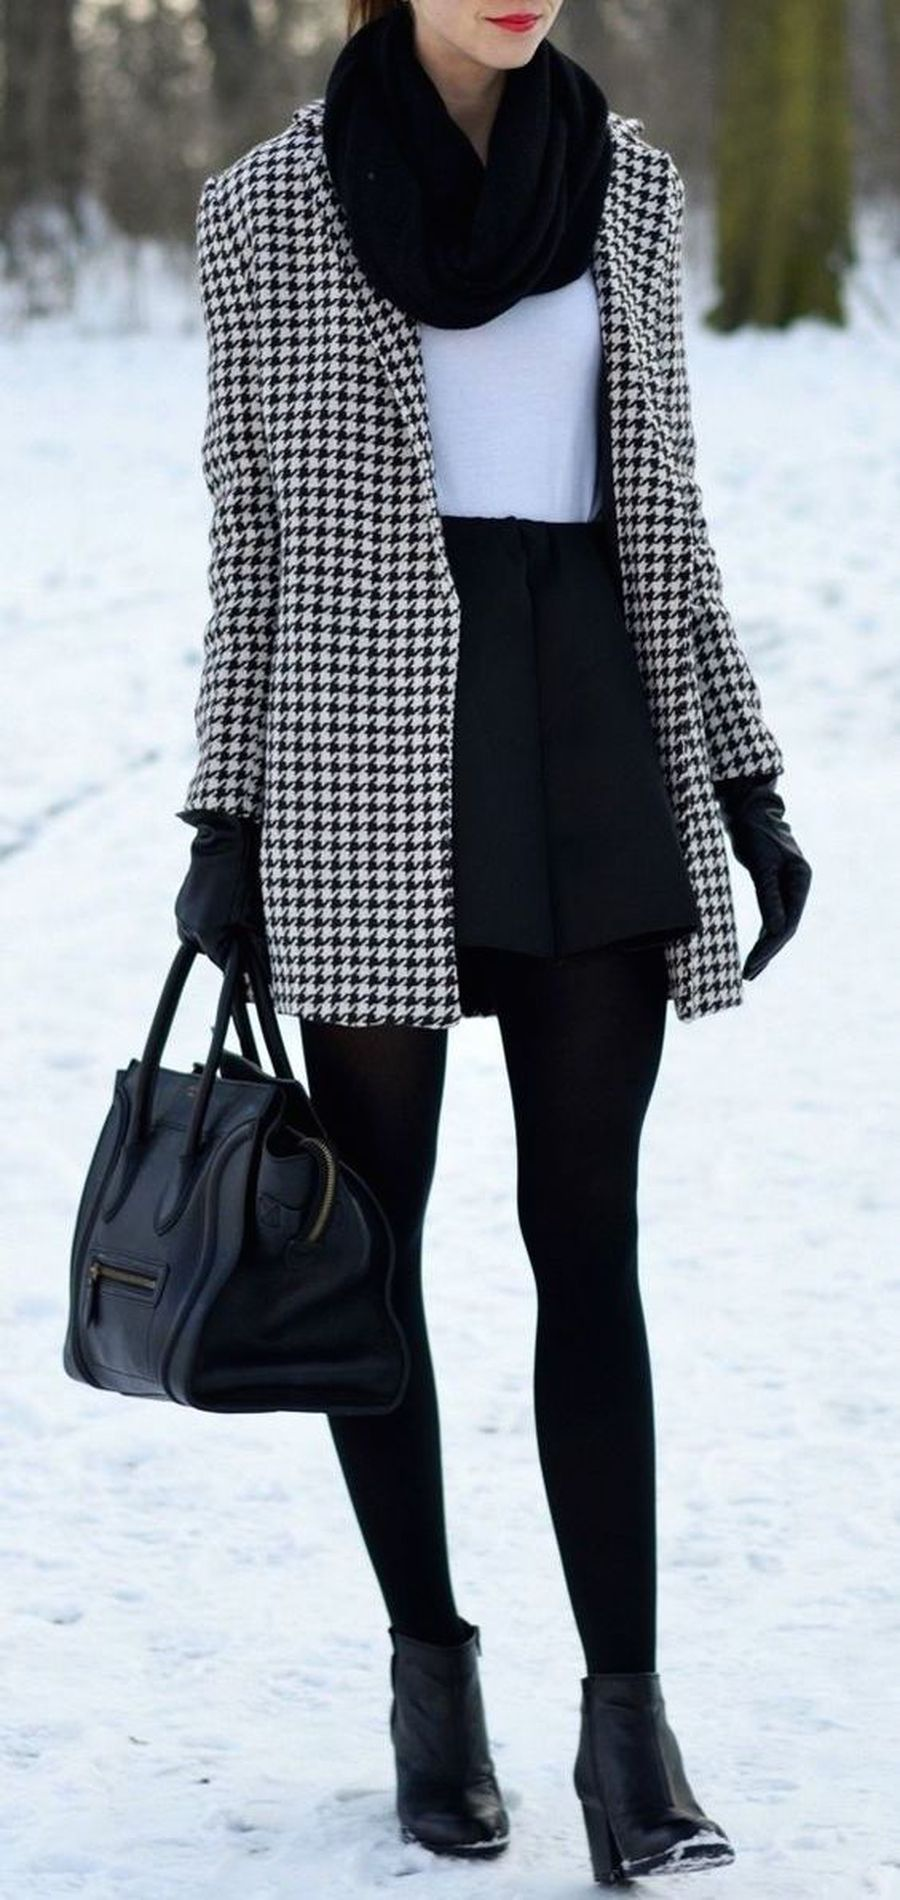 Skirt trends ideas for winter outfits this year 35